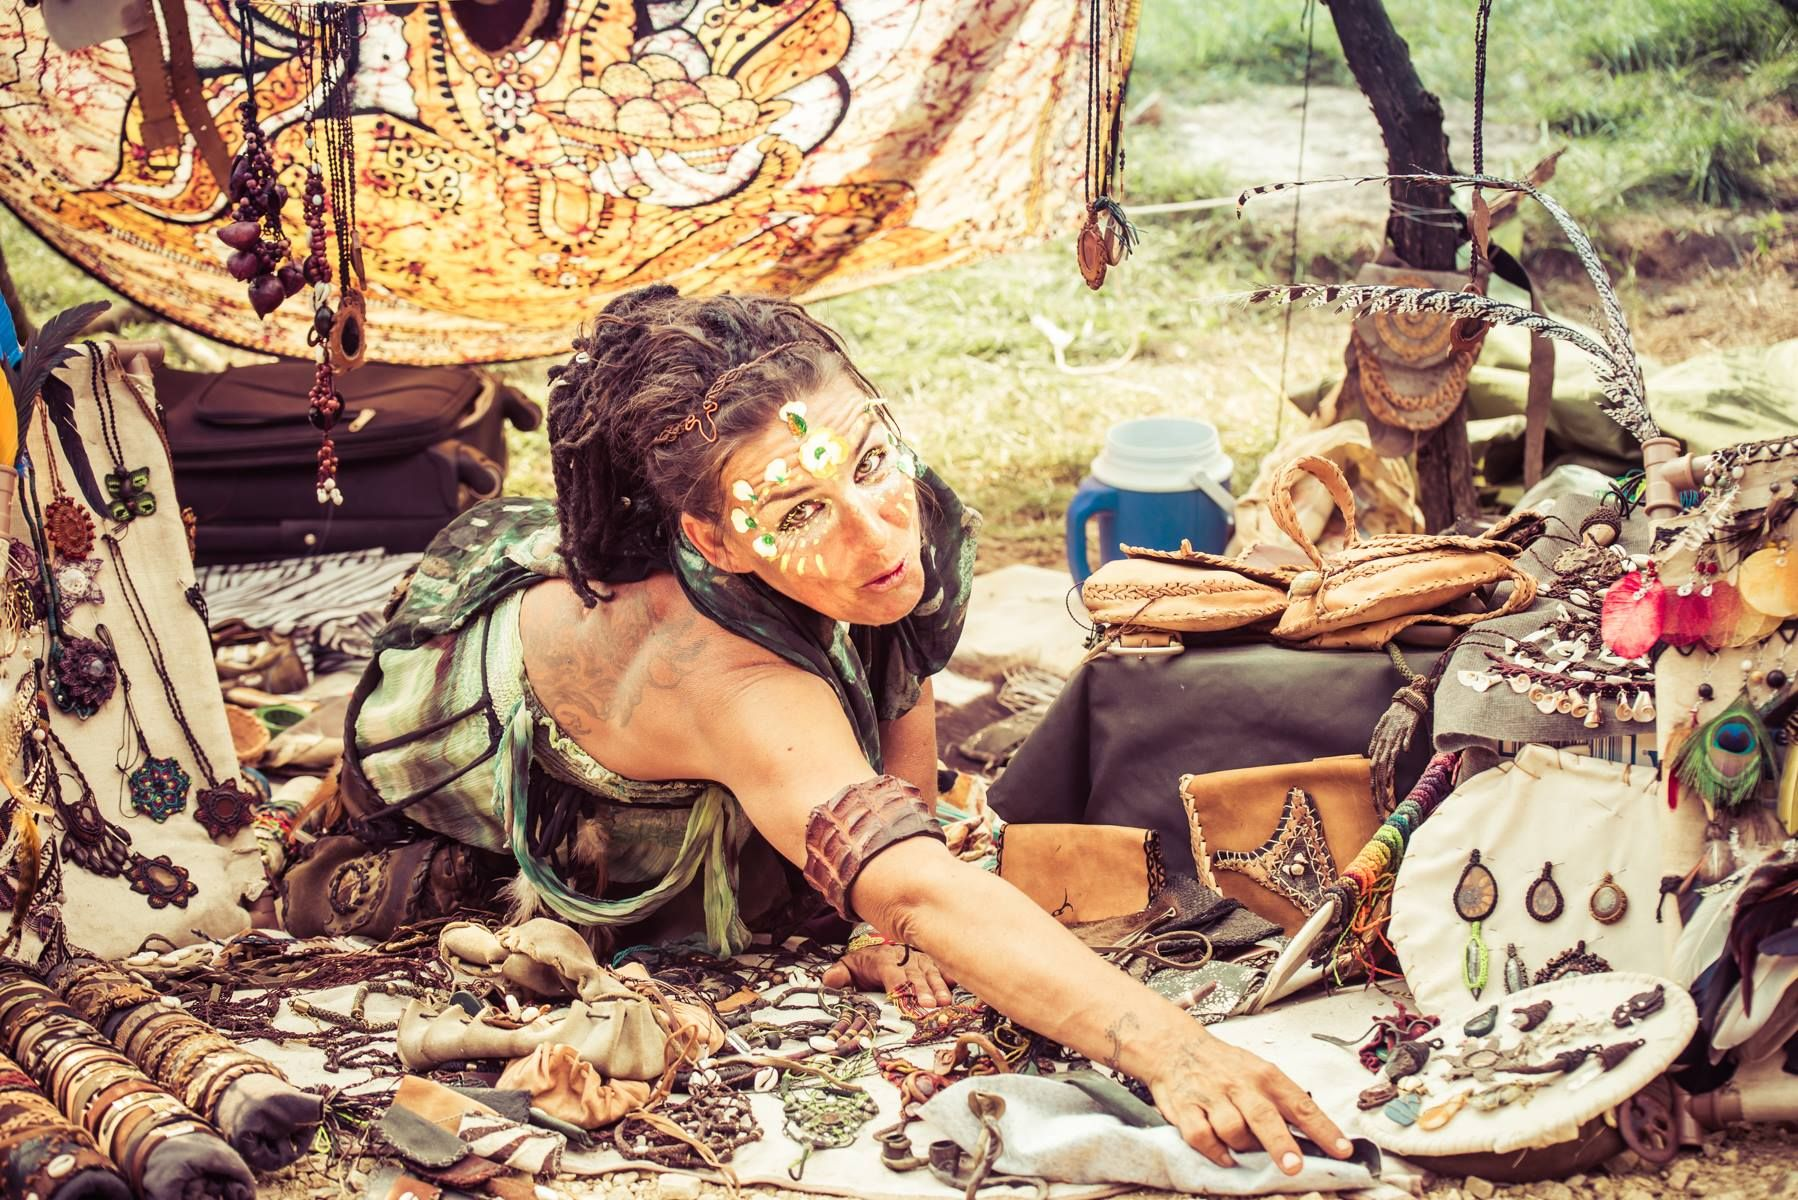 a4efbe86c Festival Fashion  6 Psychedelic Outfits You Should Wear To Your Next Rave -  Contemporary Psytrance festival clothing is versatile